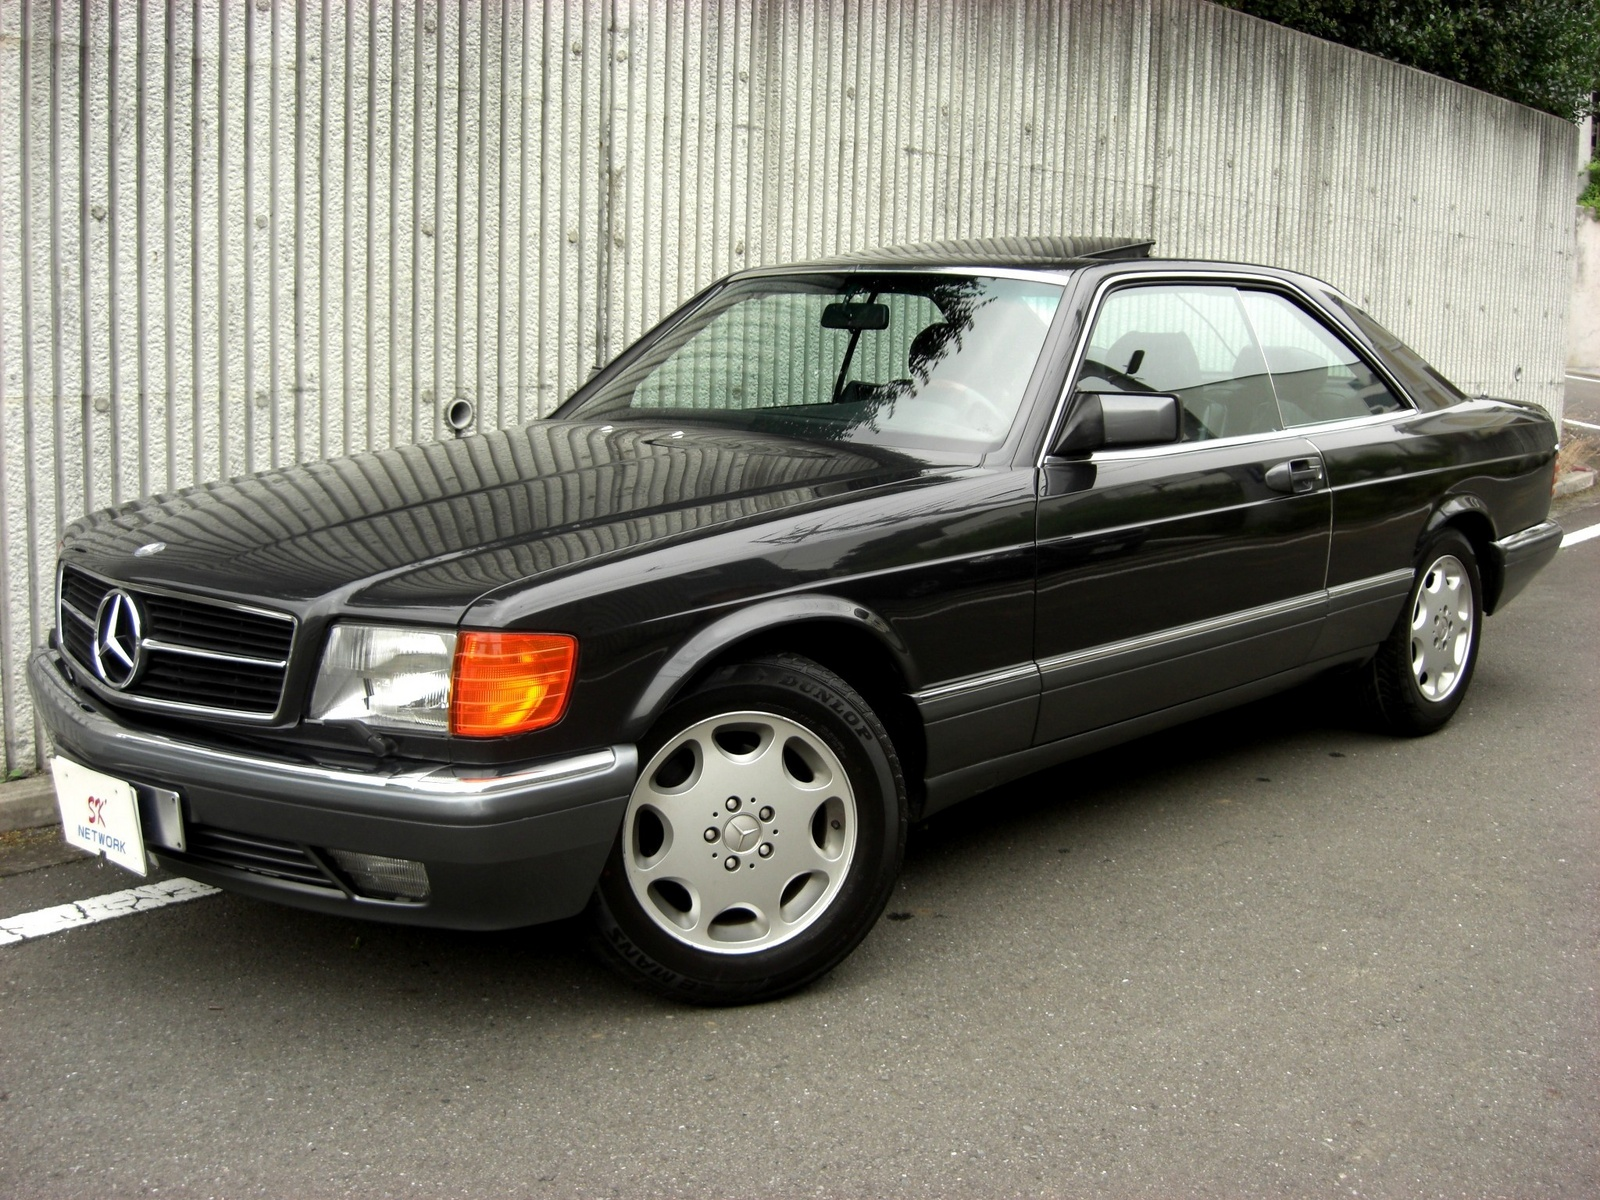 Mercedes-Benz S-klasse II (W126) Restyling 1985 - 1991 Coupe #3